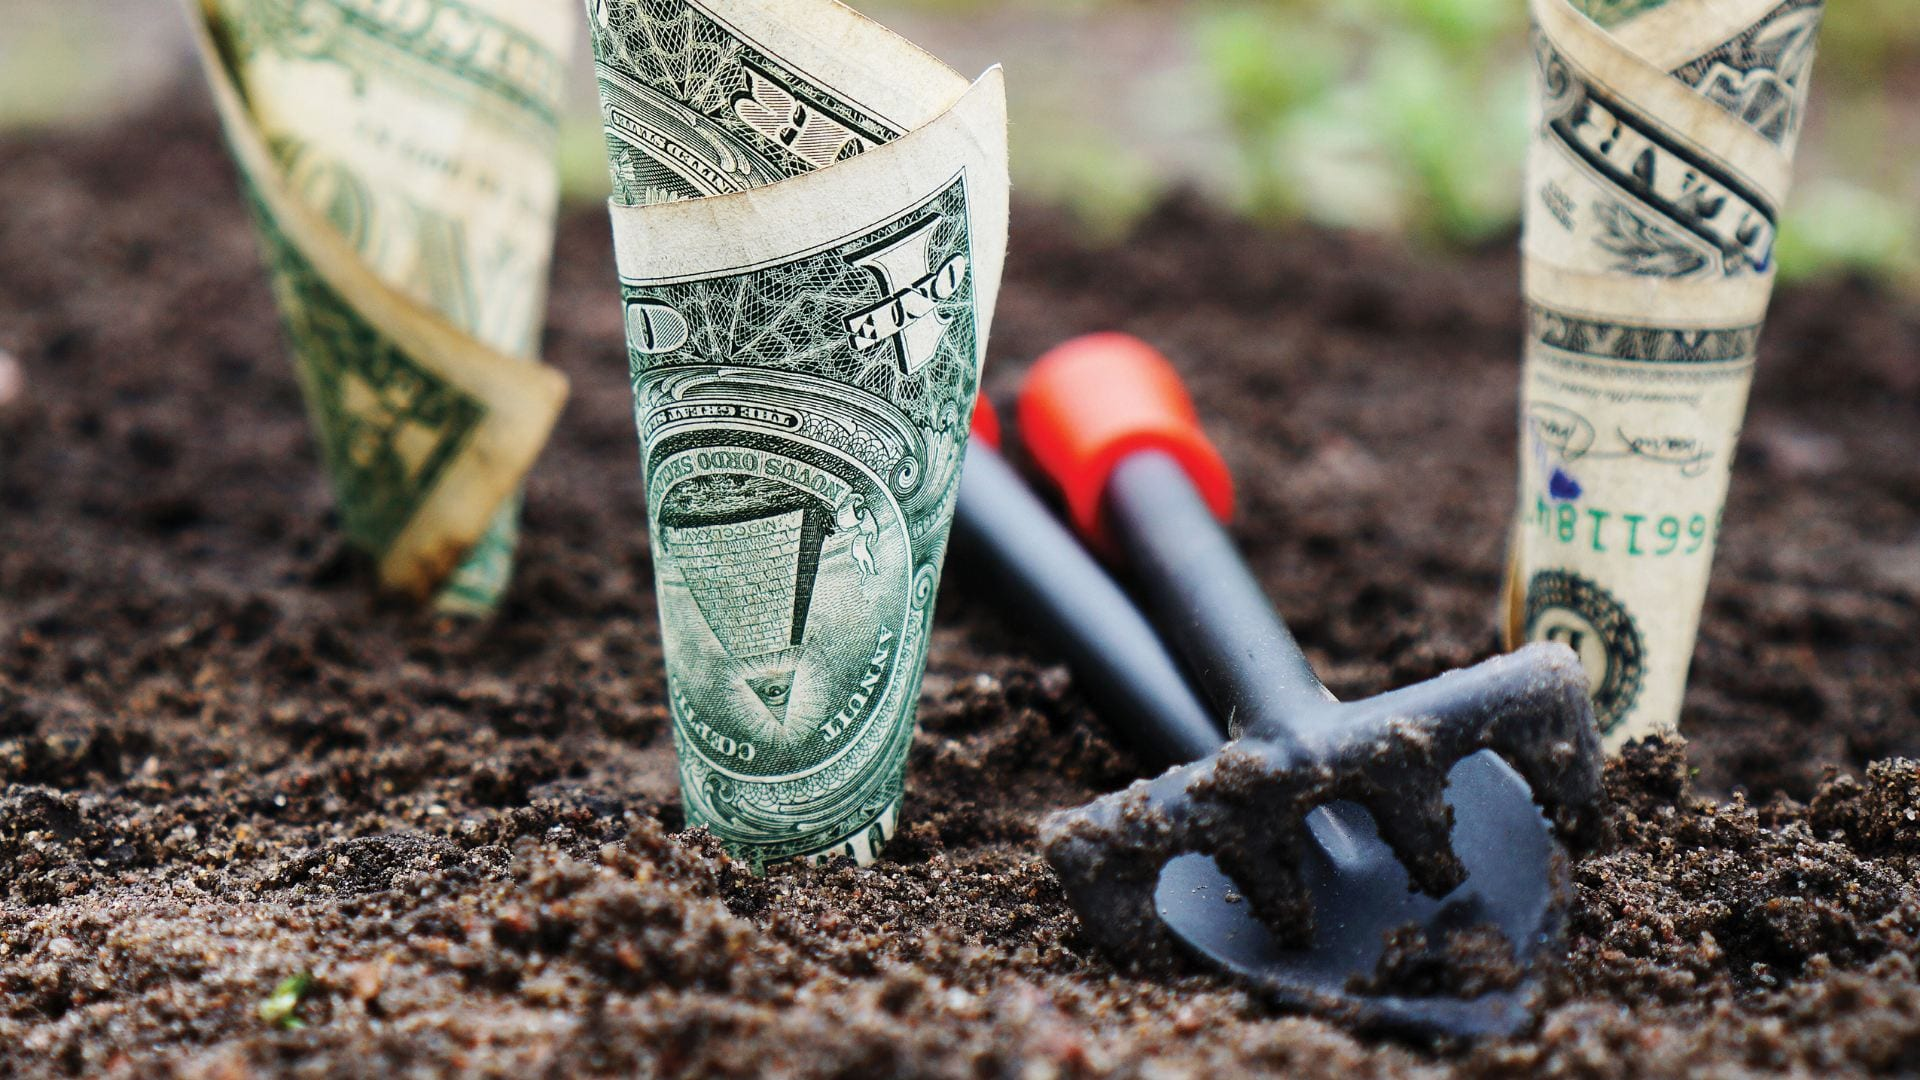 Dollar bills stuck in the ground, as if they are growing from the ground, next to a trowel